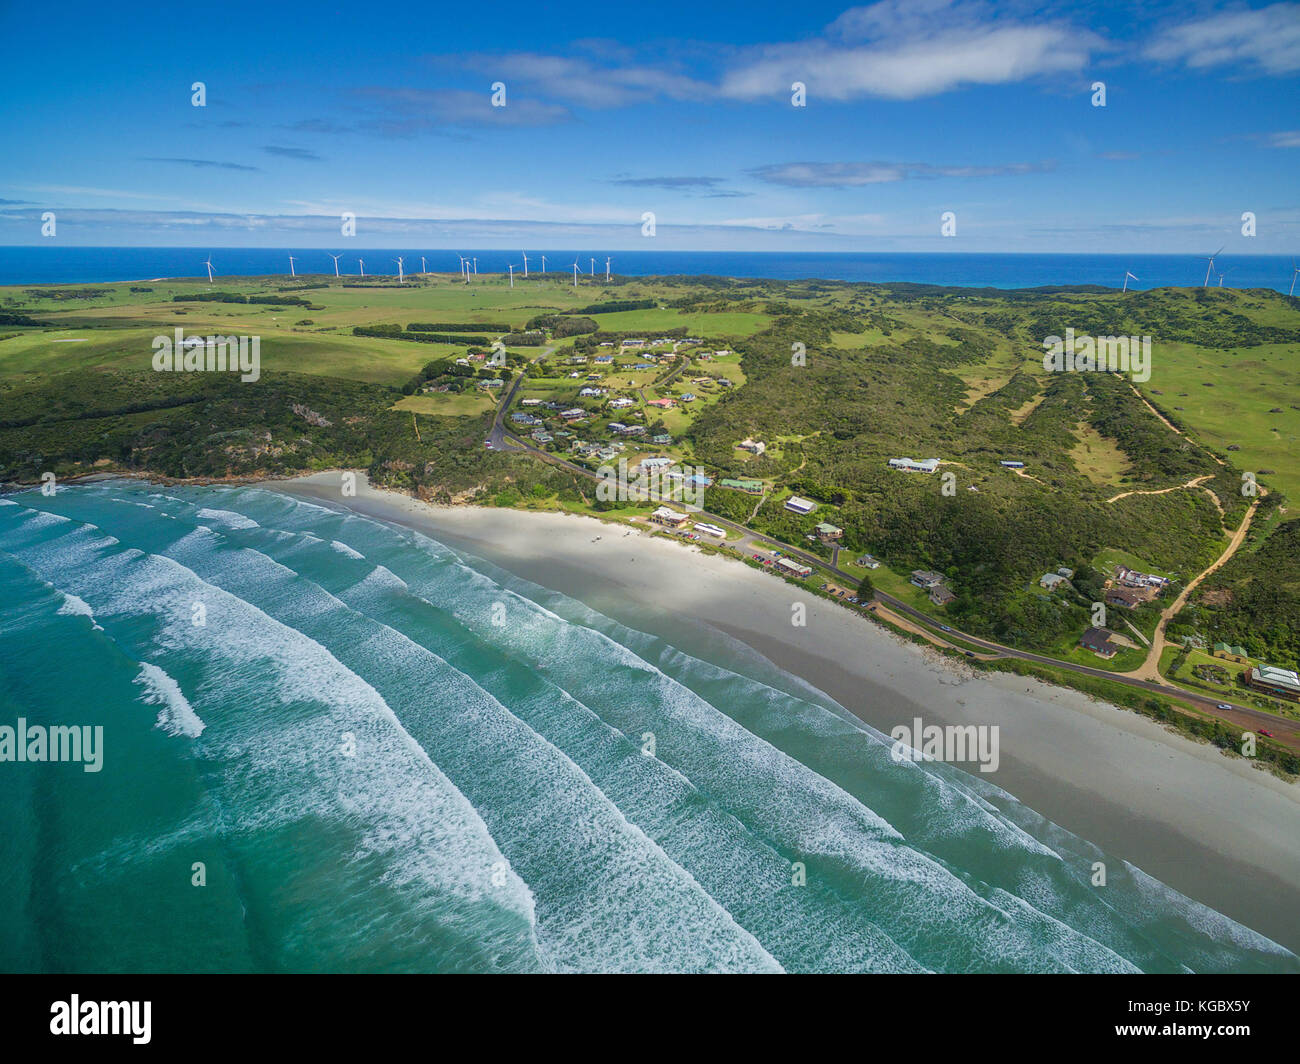 Aerial view of Cape Bridgewater beach, settlement, and wind farm in Victoria, Australia - Stock Image